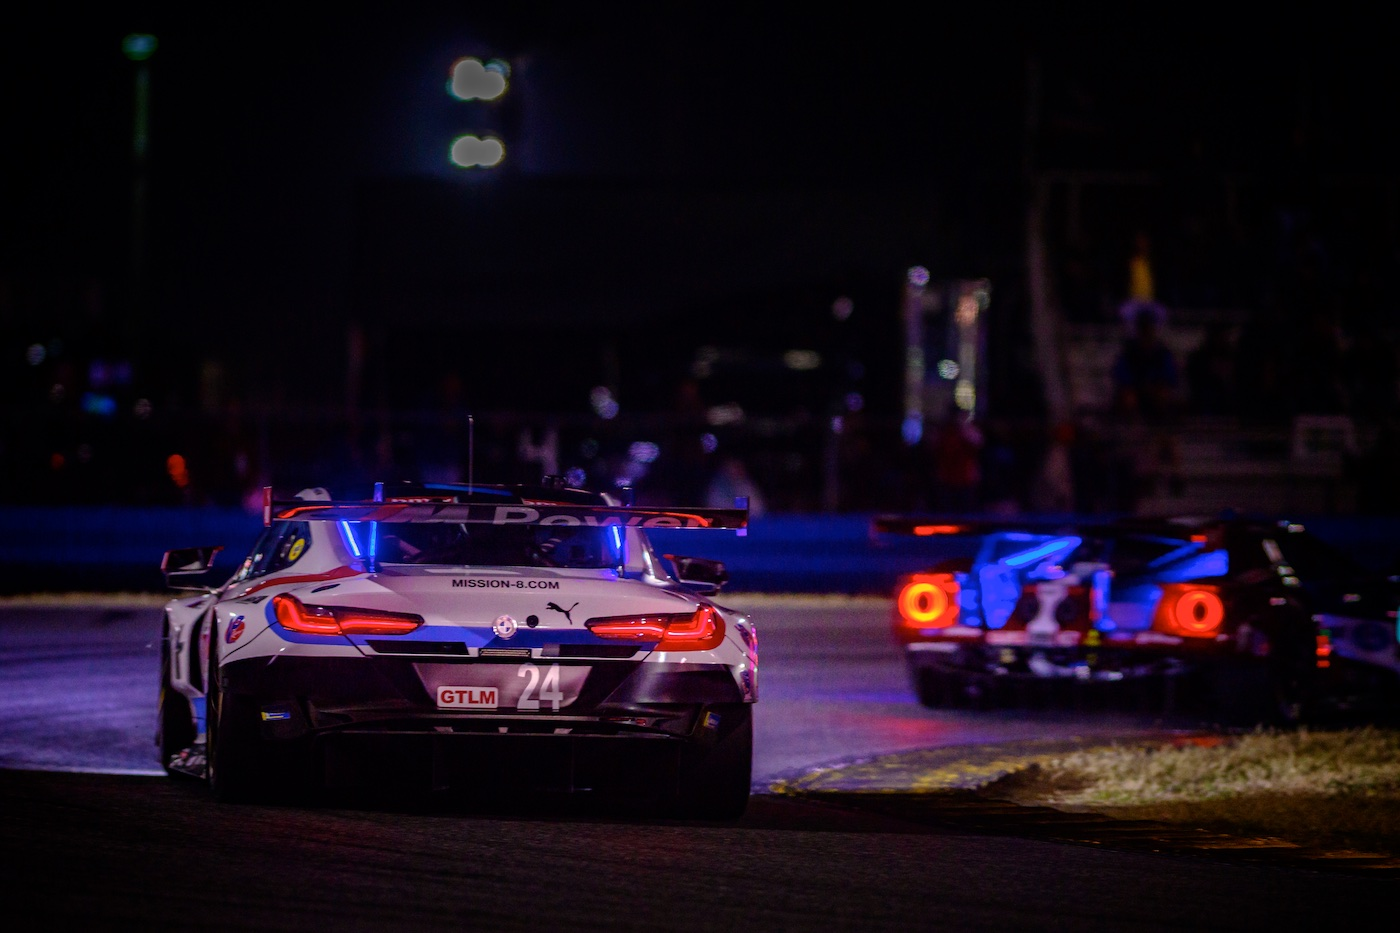 Gallery: Rolex 24 Thursday action